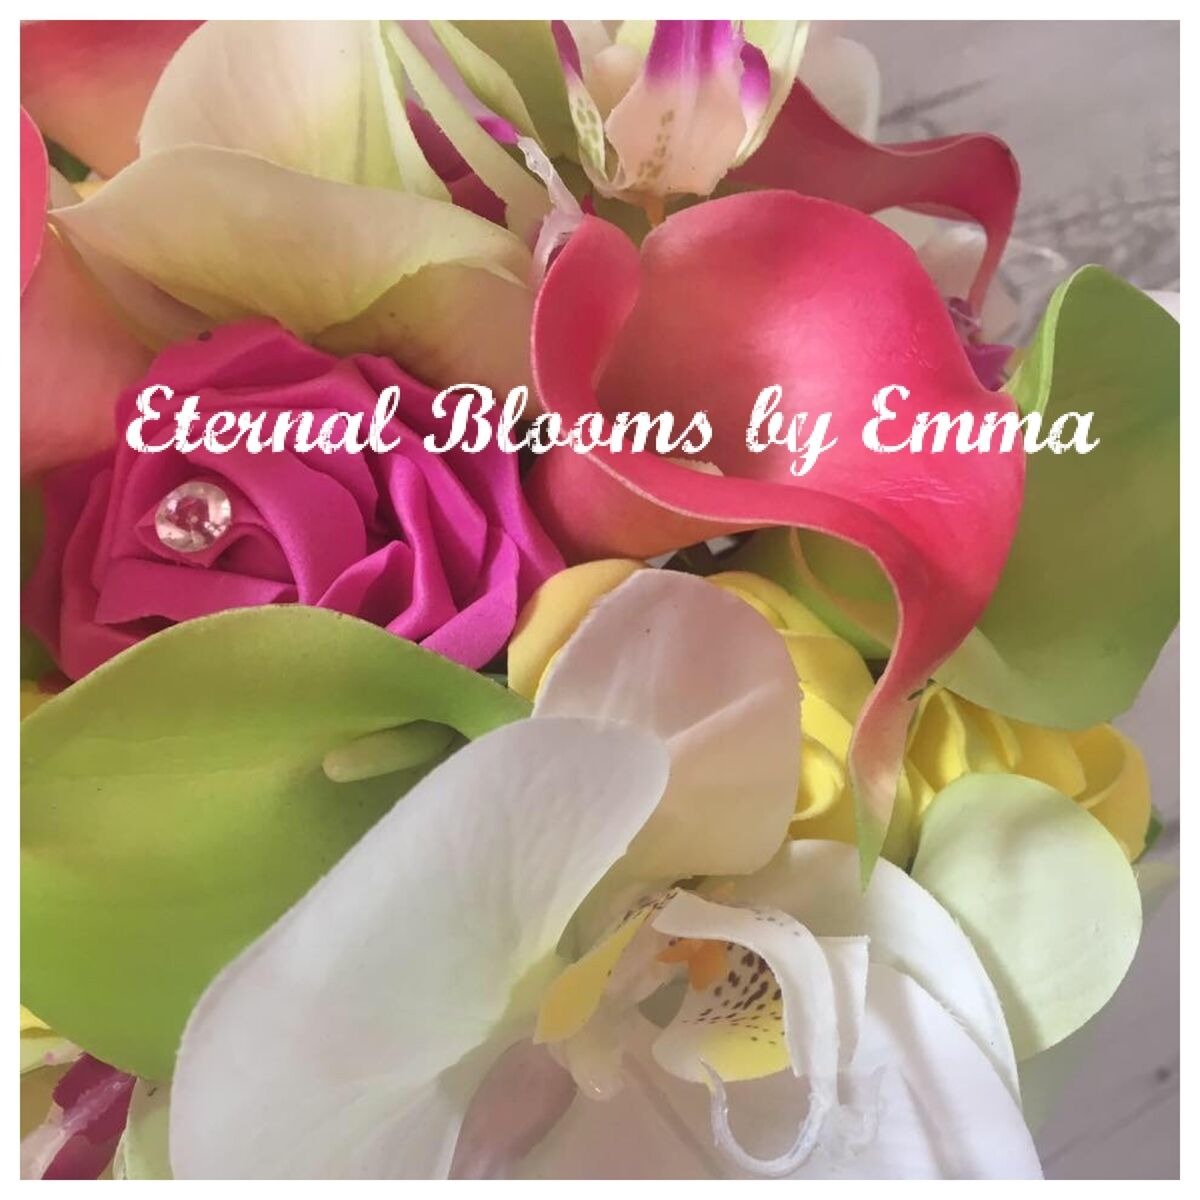 Blooms by Emma